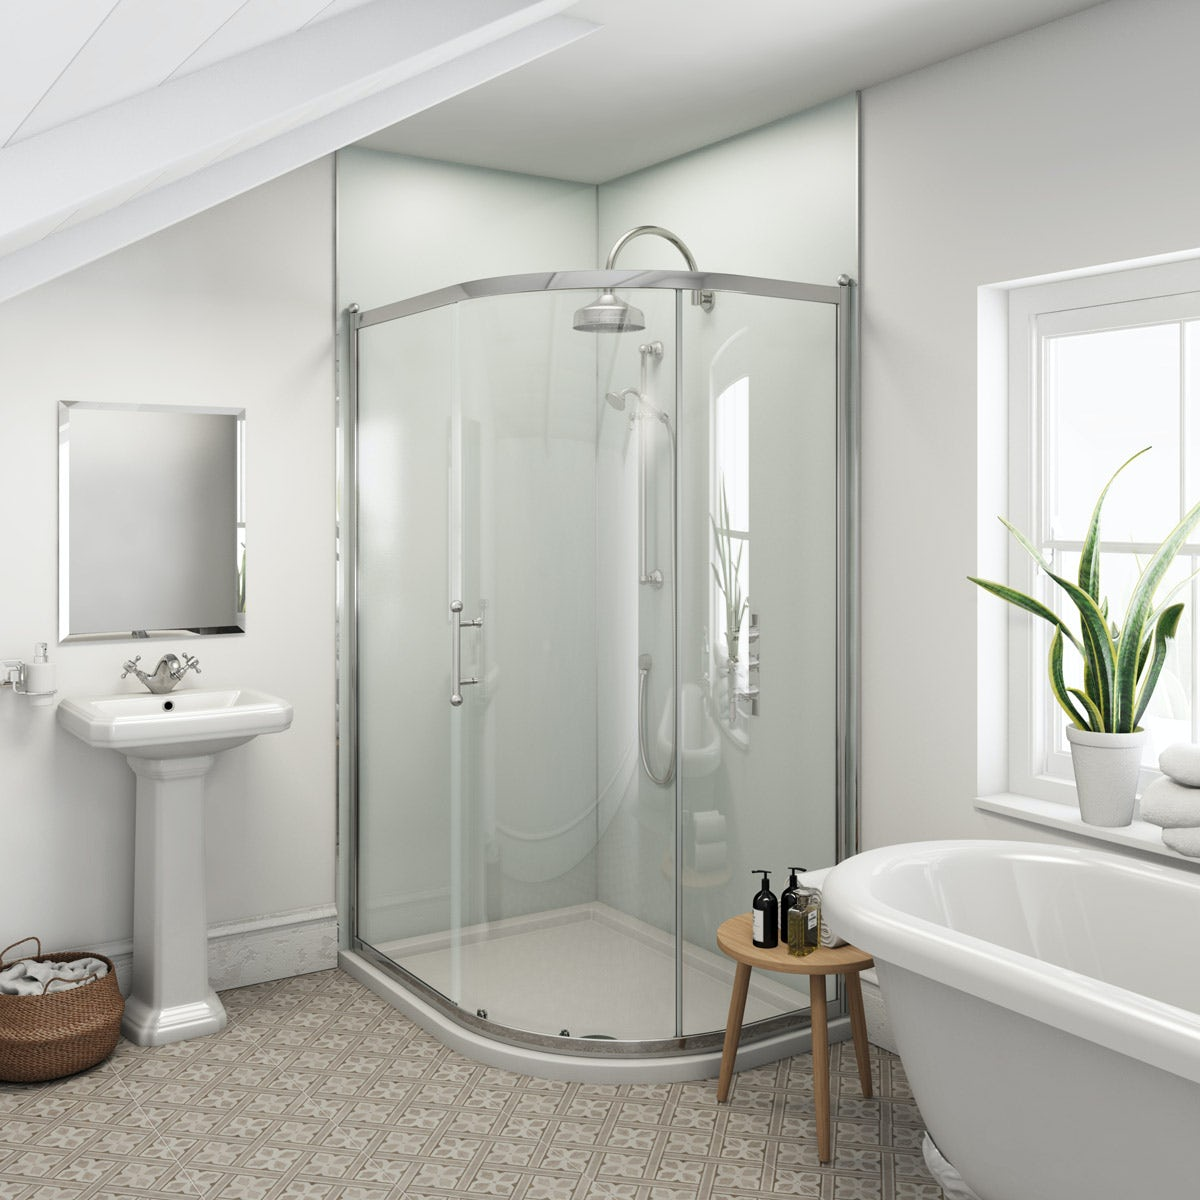 Multipanel Heritage Kew Gloss unlipped shower wall panel 2400 x 1200